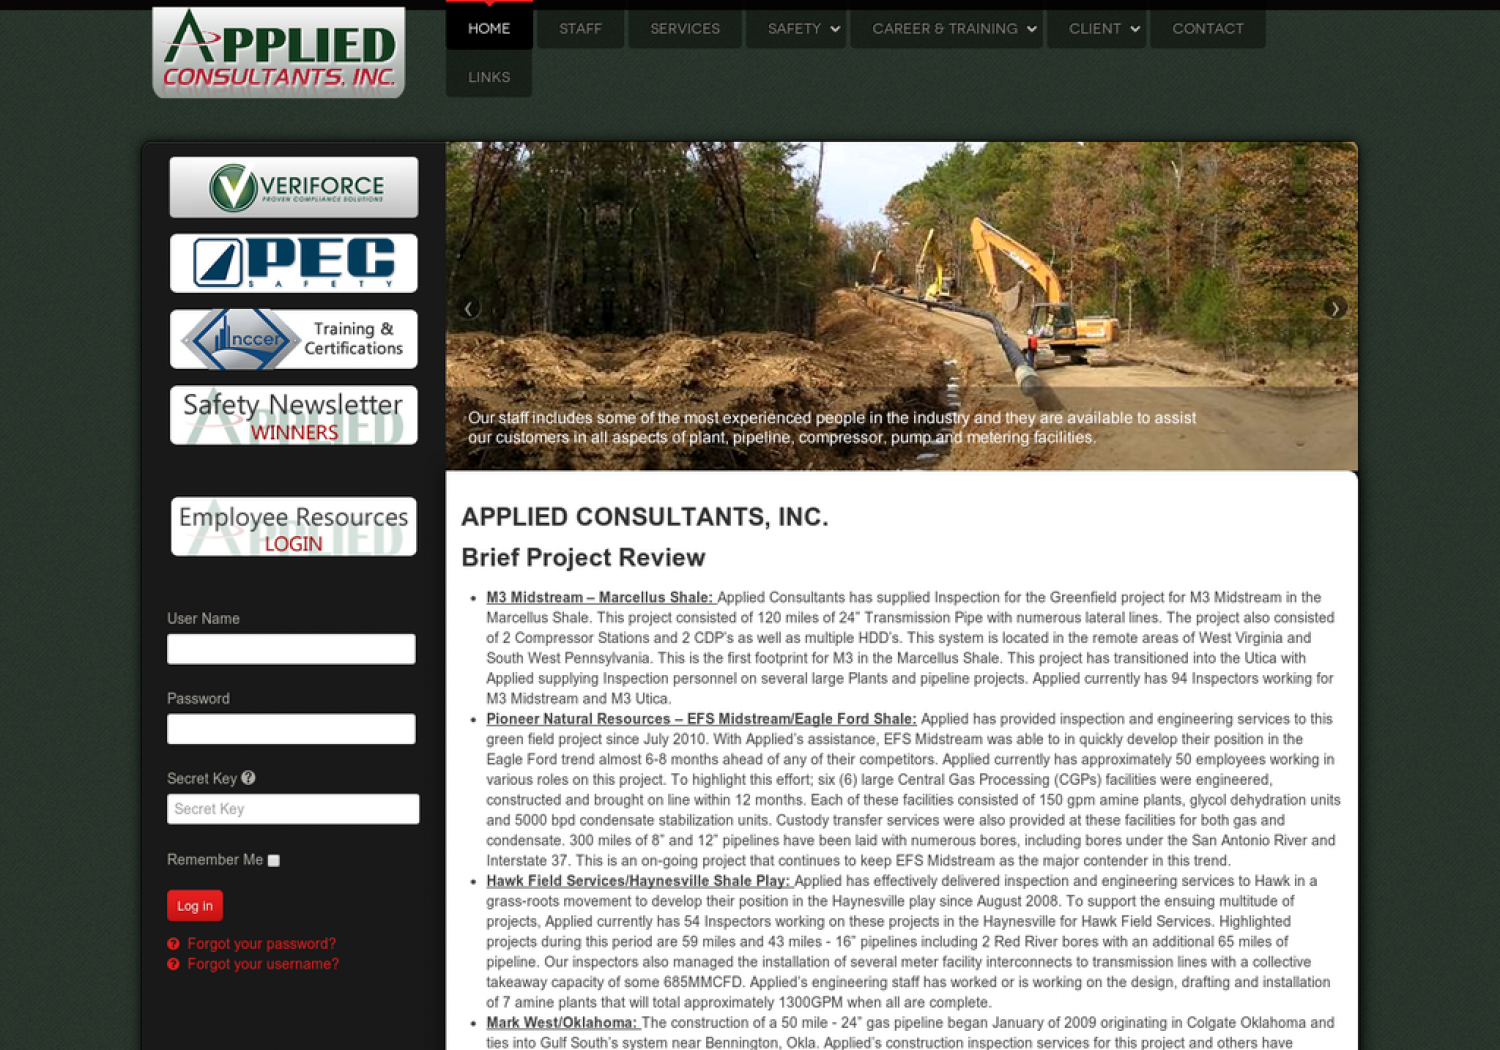 APPLIED CONSULTANTS, INC. – Brief Project Review Infographic